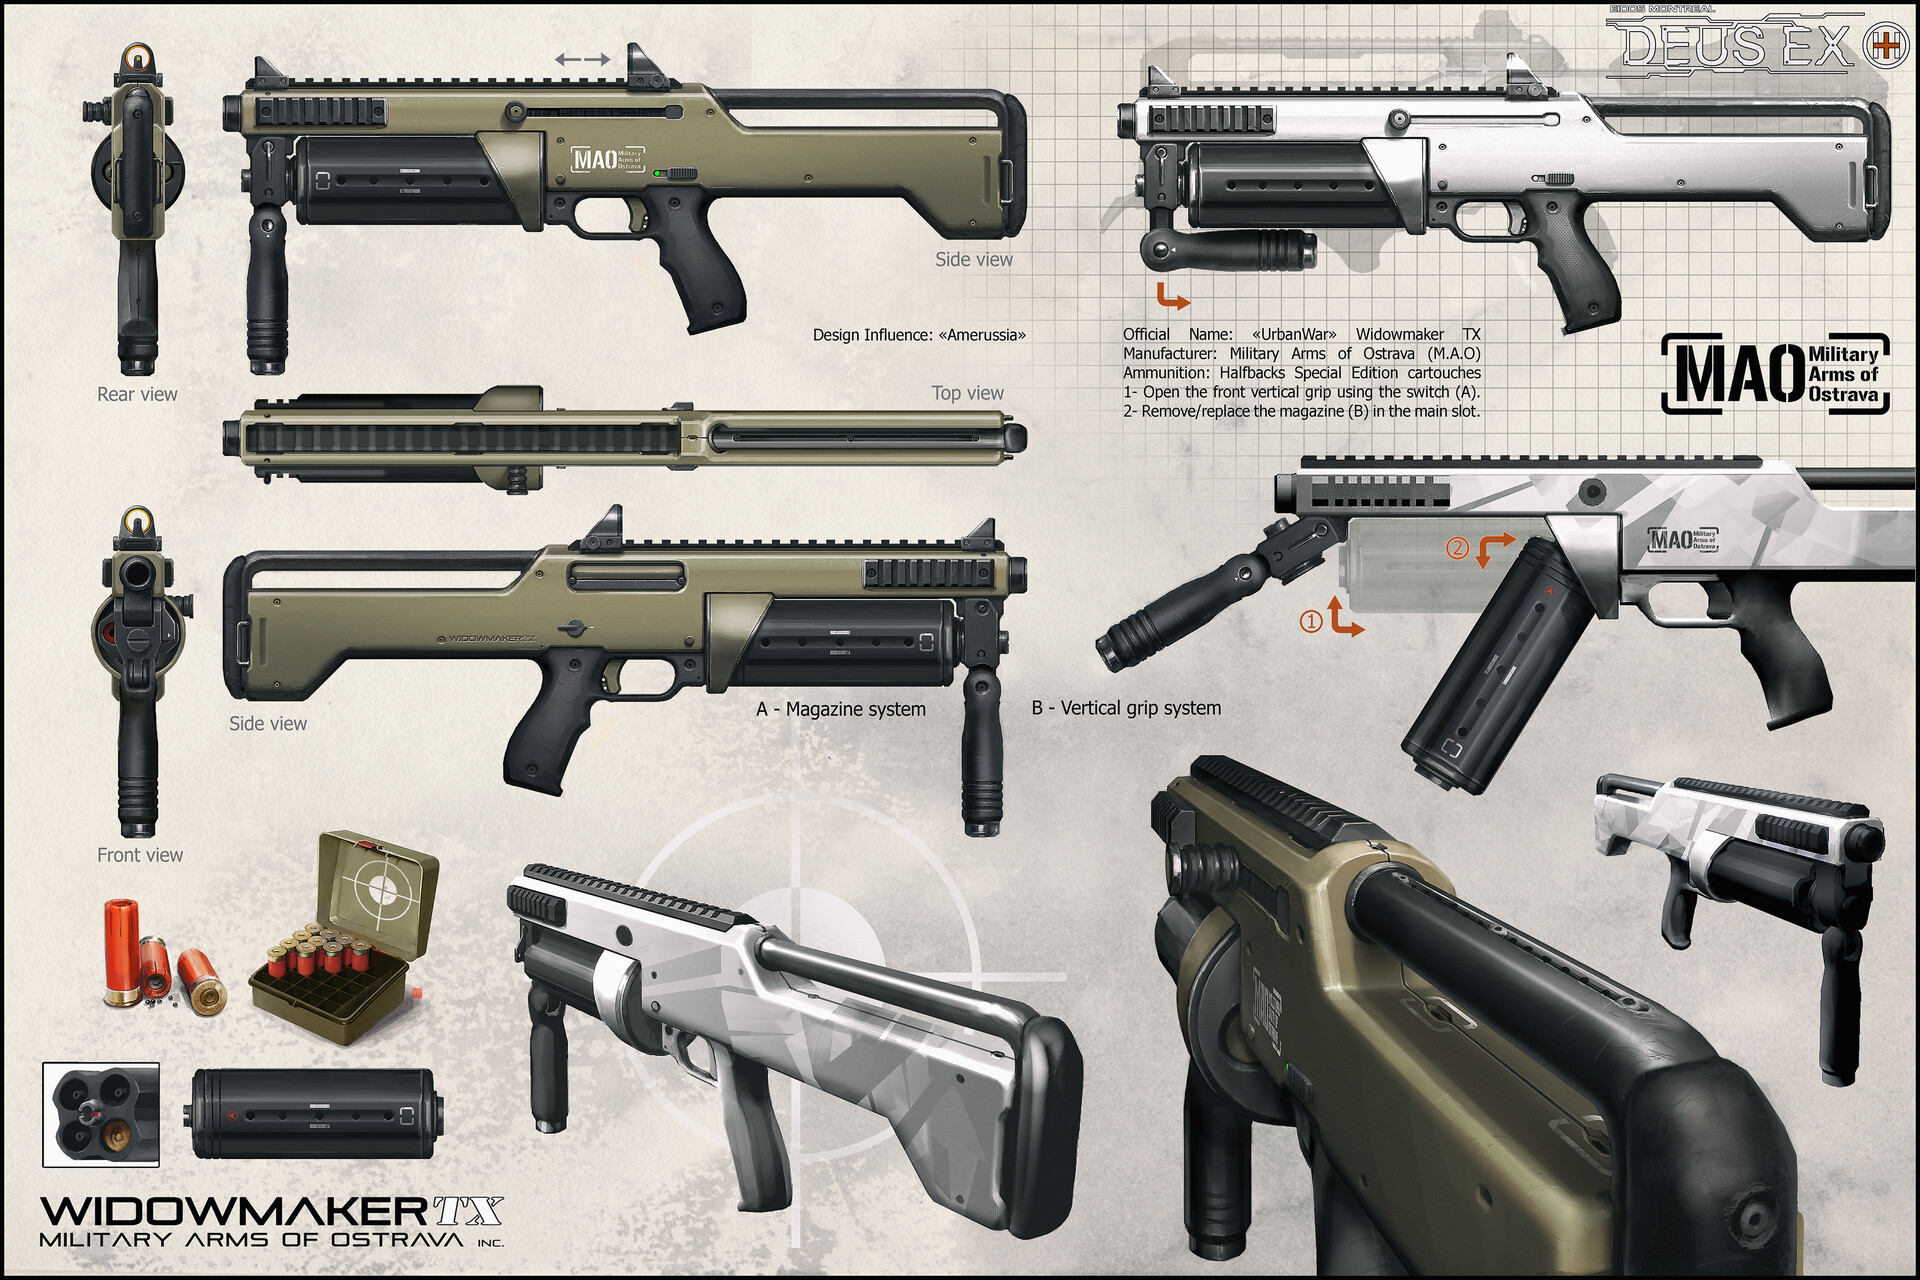 The Shotgun, with an Eastern European influenced, very simple and efficient weapon..